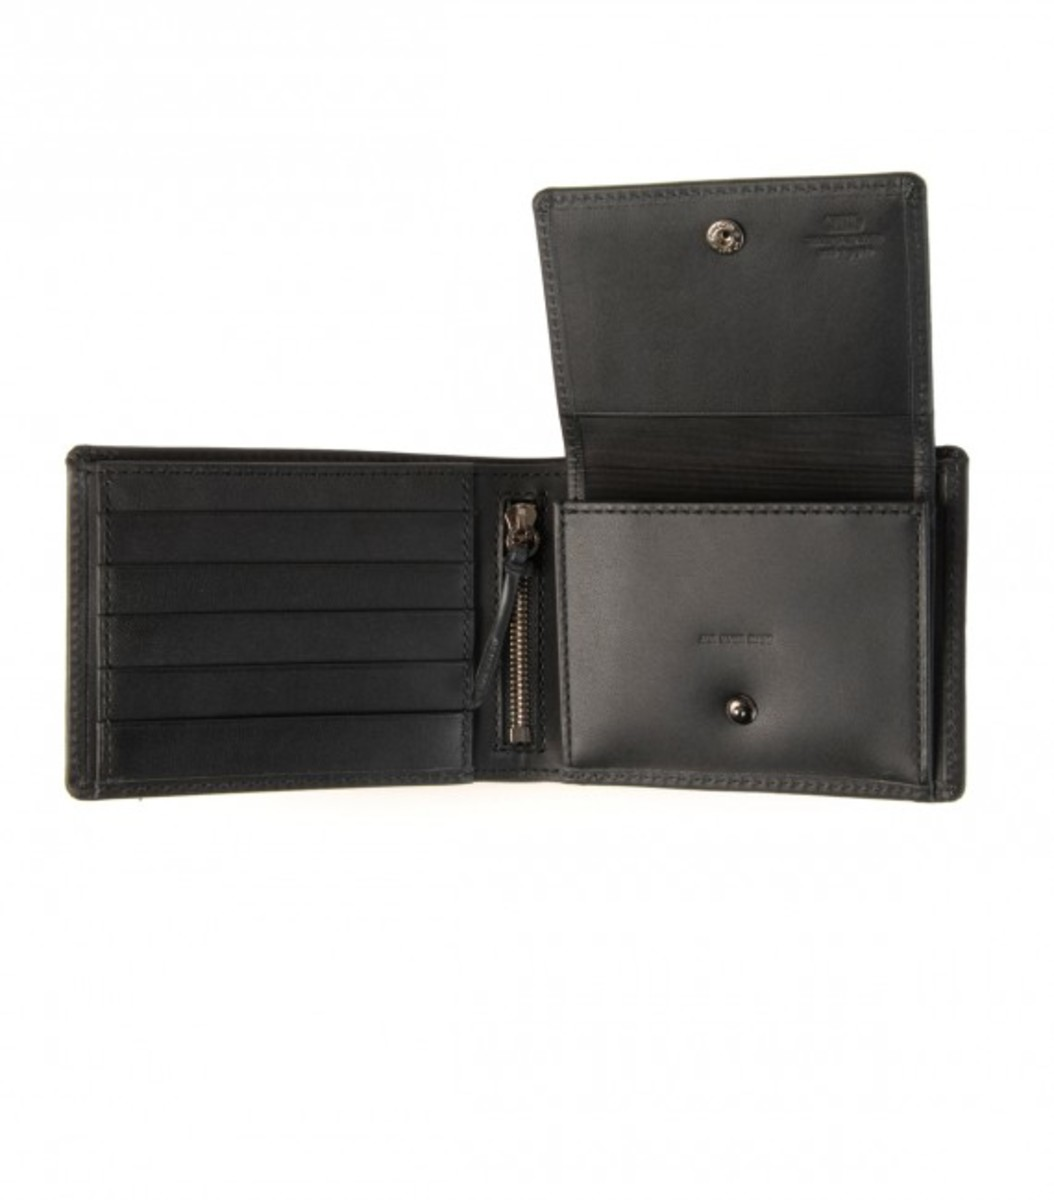 jam-home-made-wallet-03